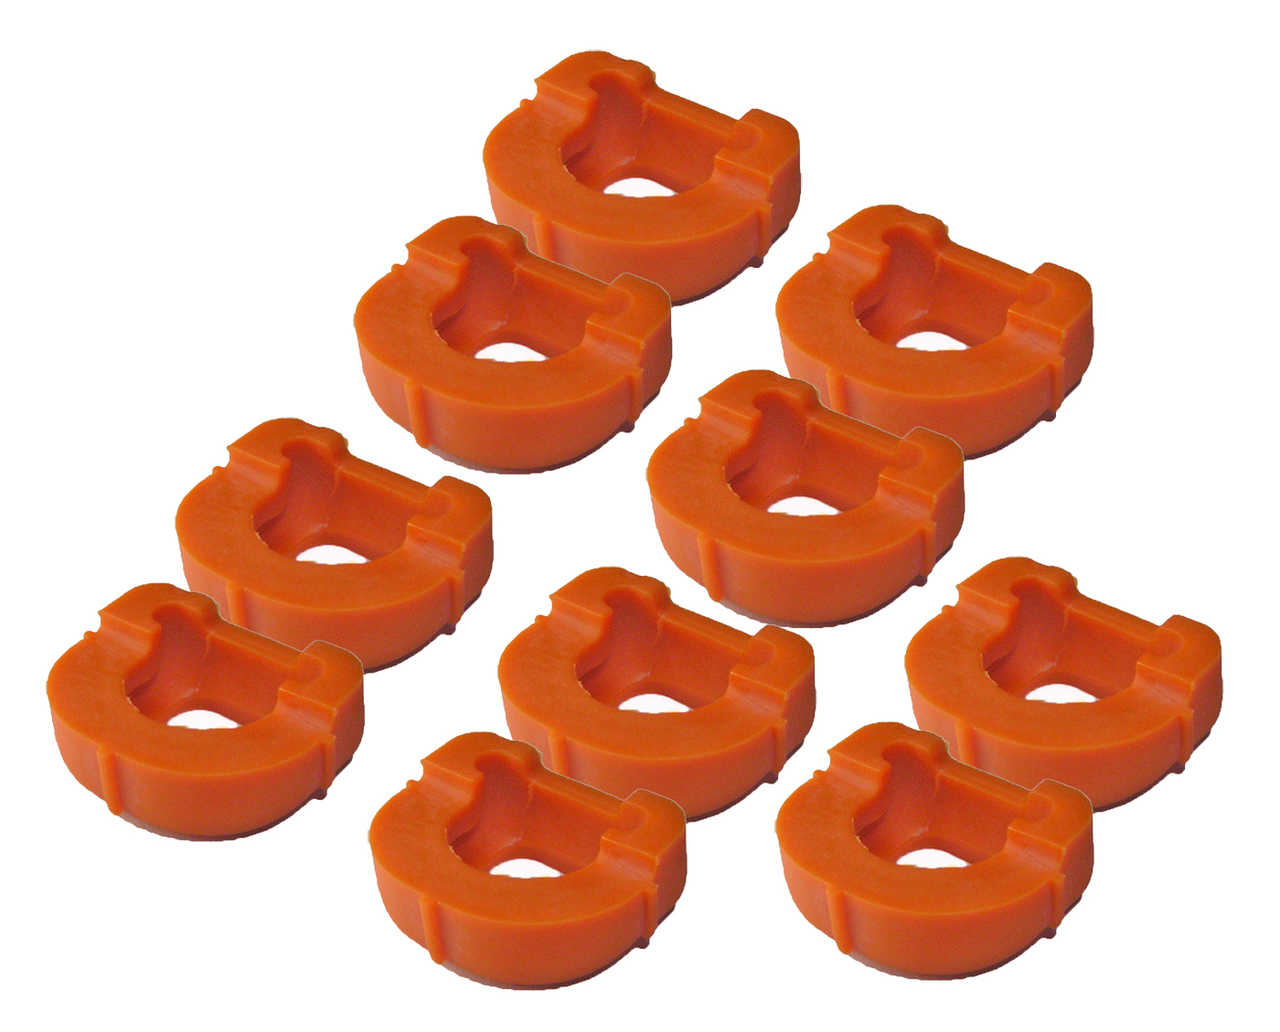 Ridgid R250SFA Nailers (10 Pack) Replacement No-Mar Pad # 079003001105-10PK